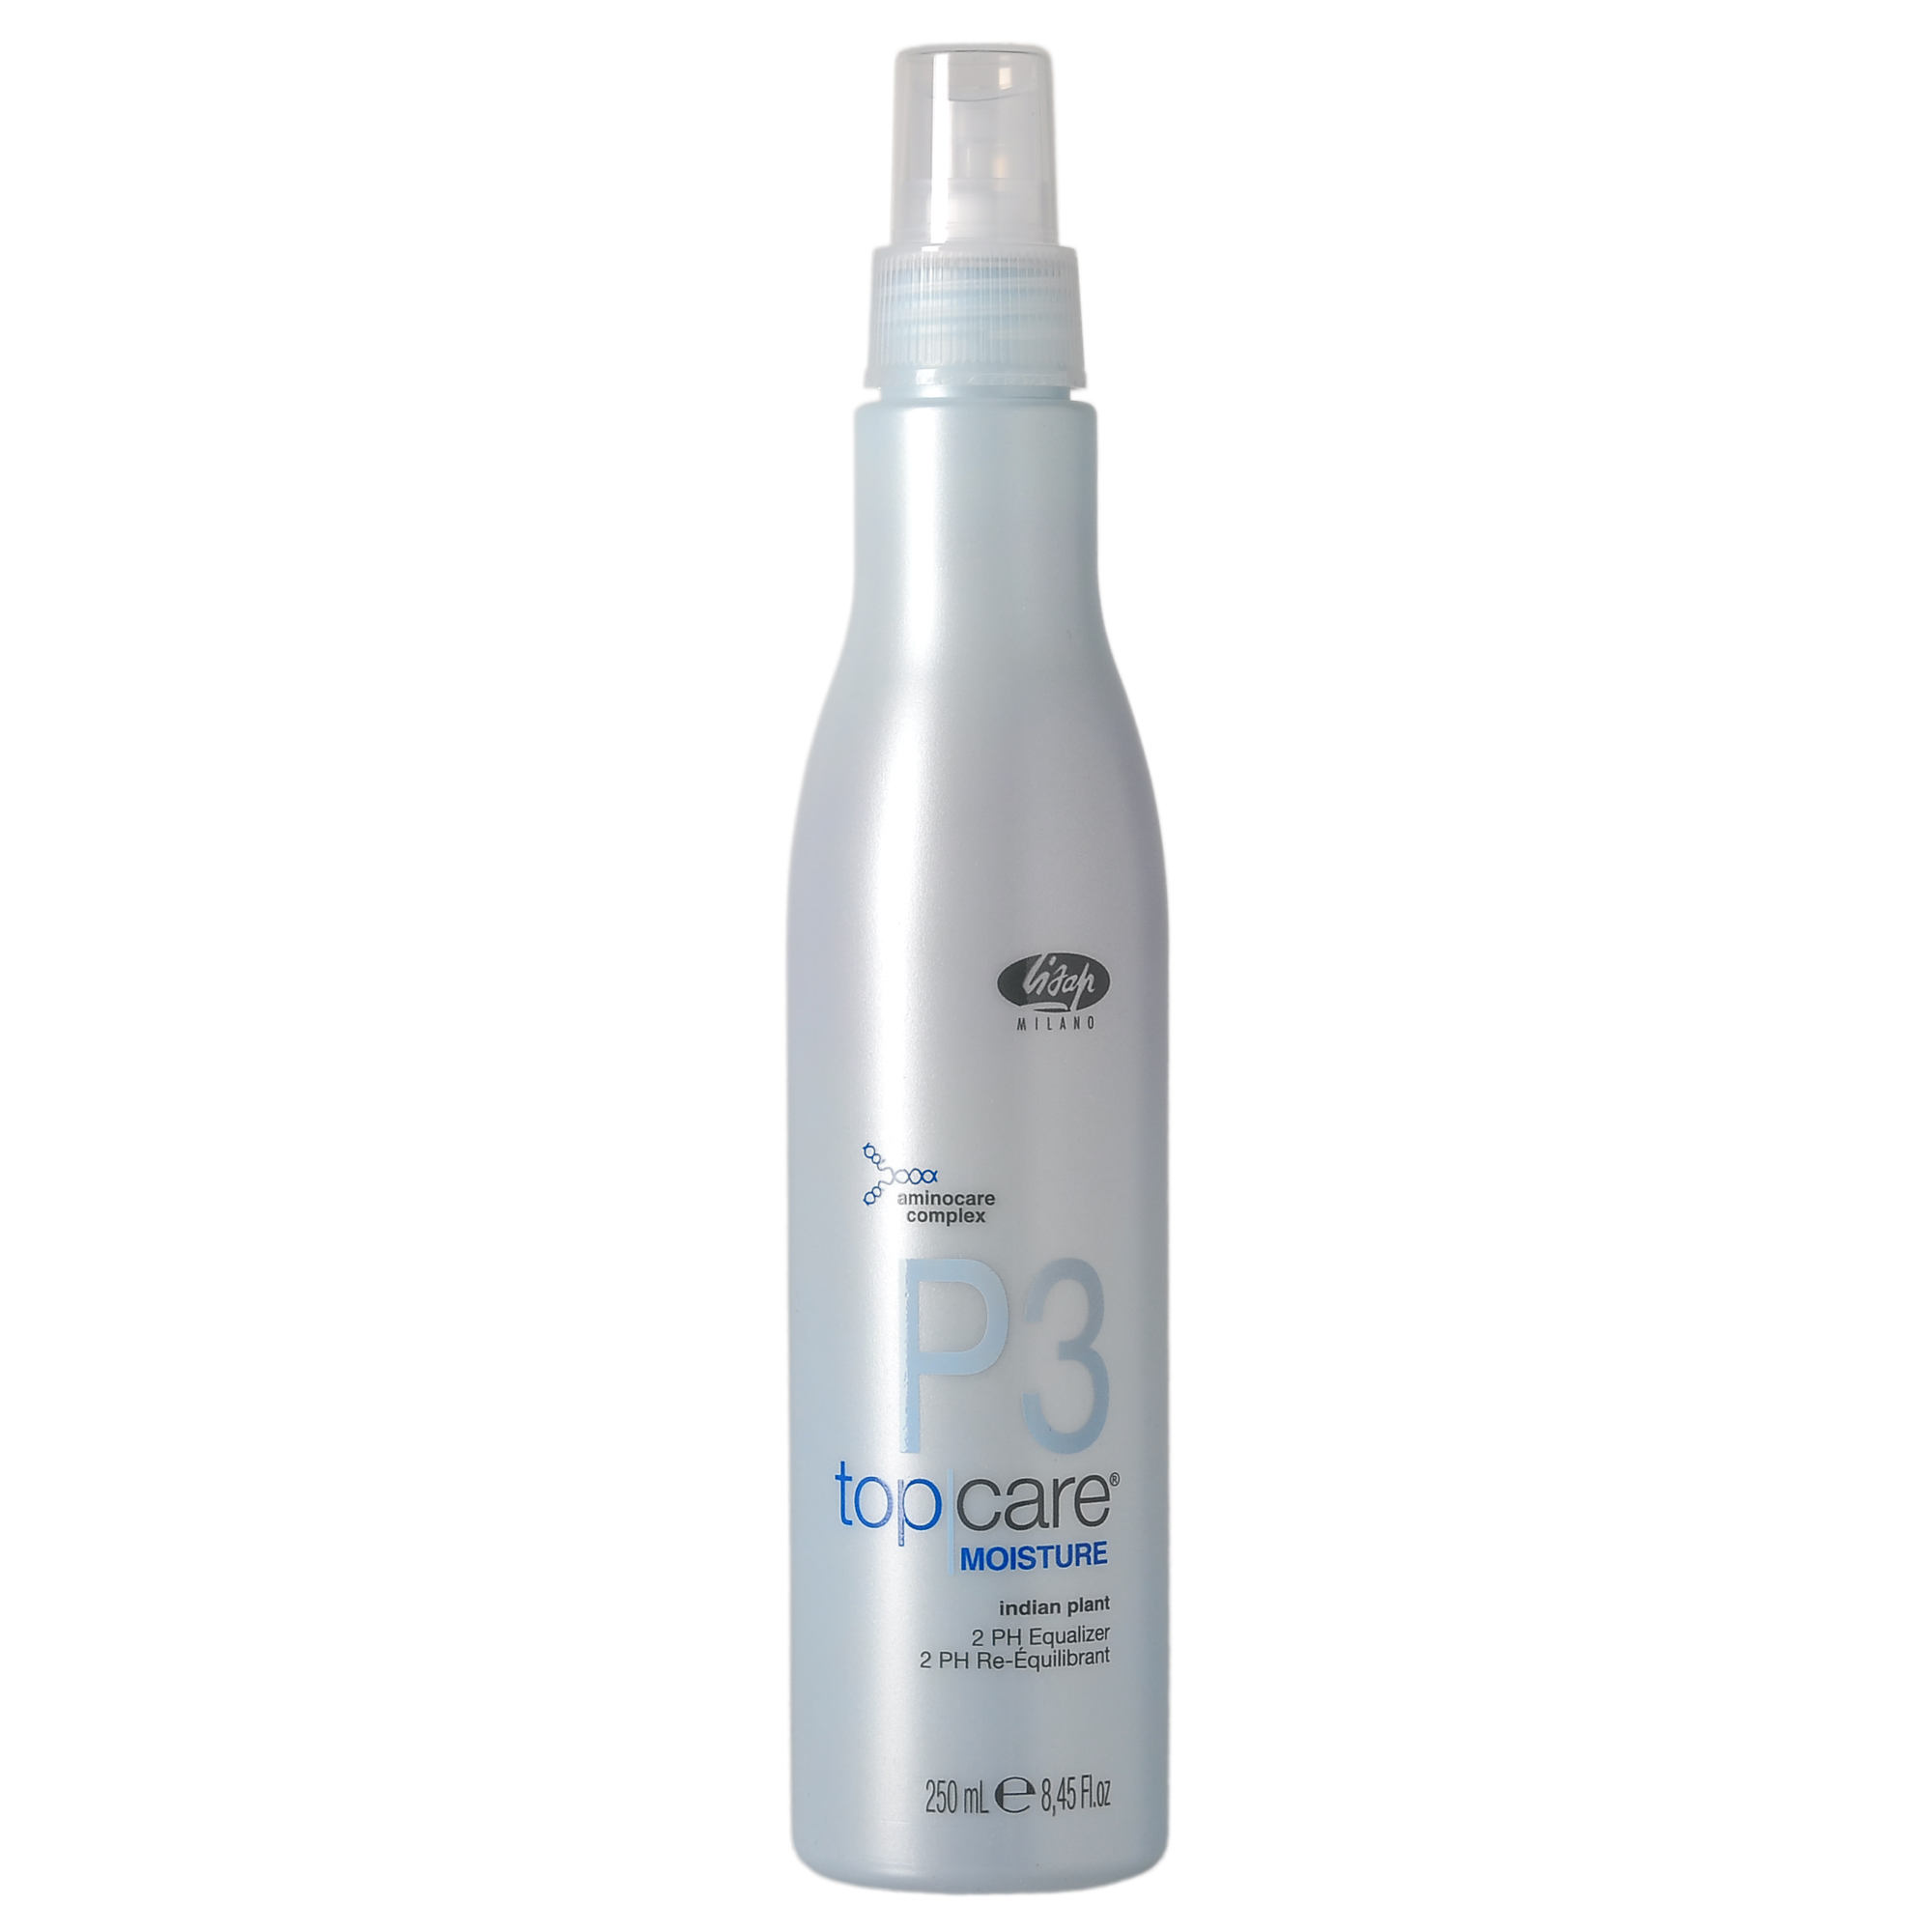 LISAP MILANO �����-������� ���������� ��� ���������� ���������� ����� / TOP CARE MOISTURE 250��